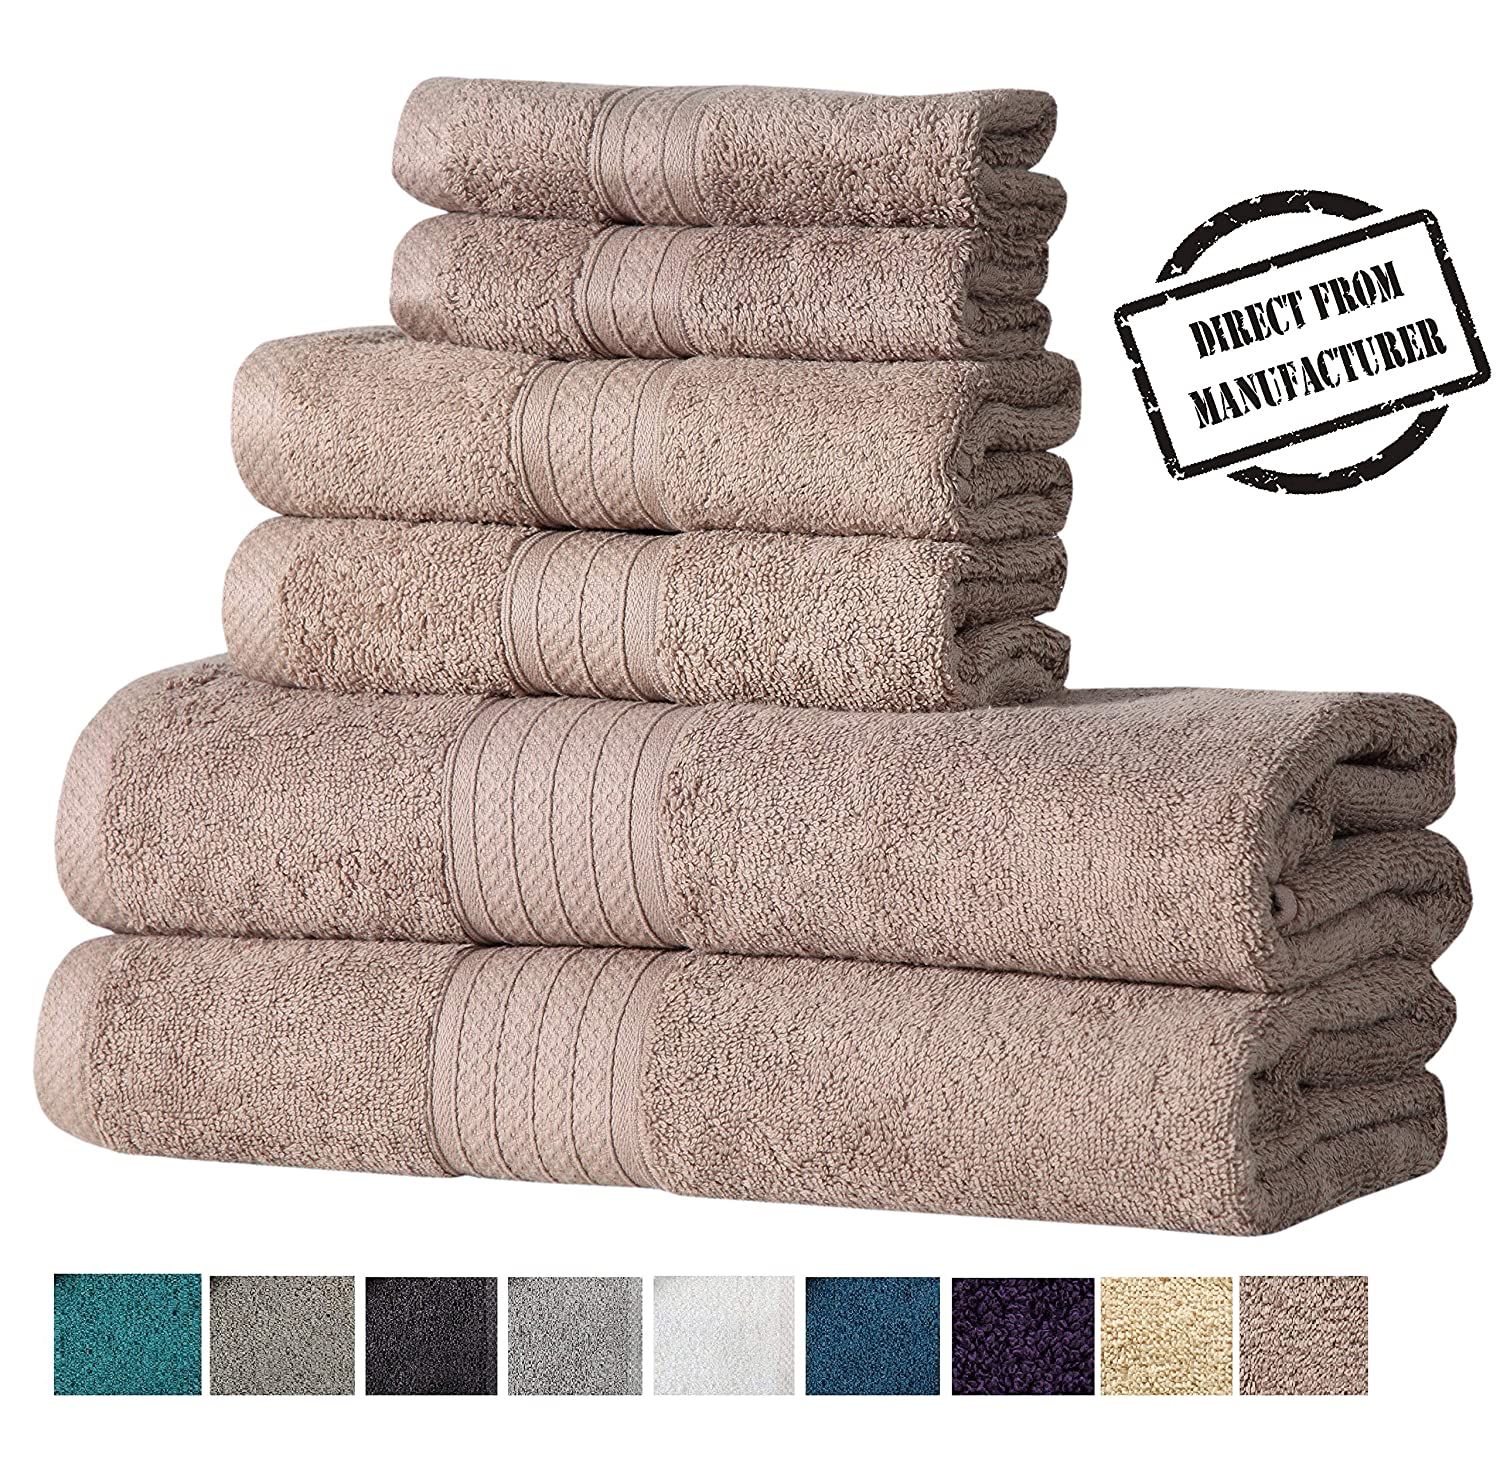 "Avira Home 2 Piece Bath mat Set, Step Out Bathmat Set 20""x30"", 100% Cotton, Super Soft, Plush & Absorbent, Washable Tub mat Set"